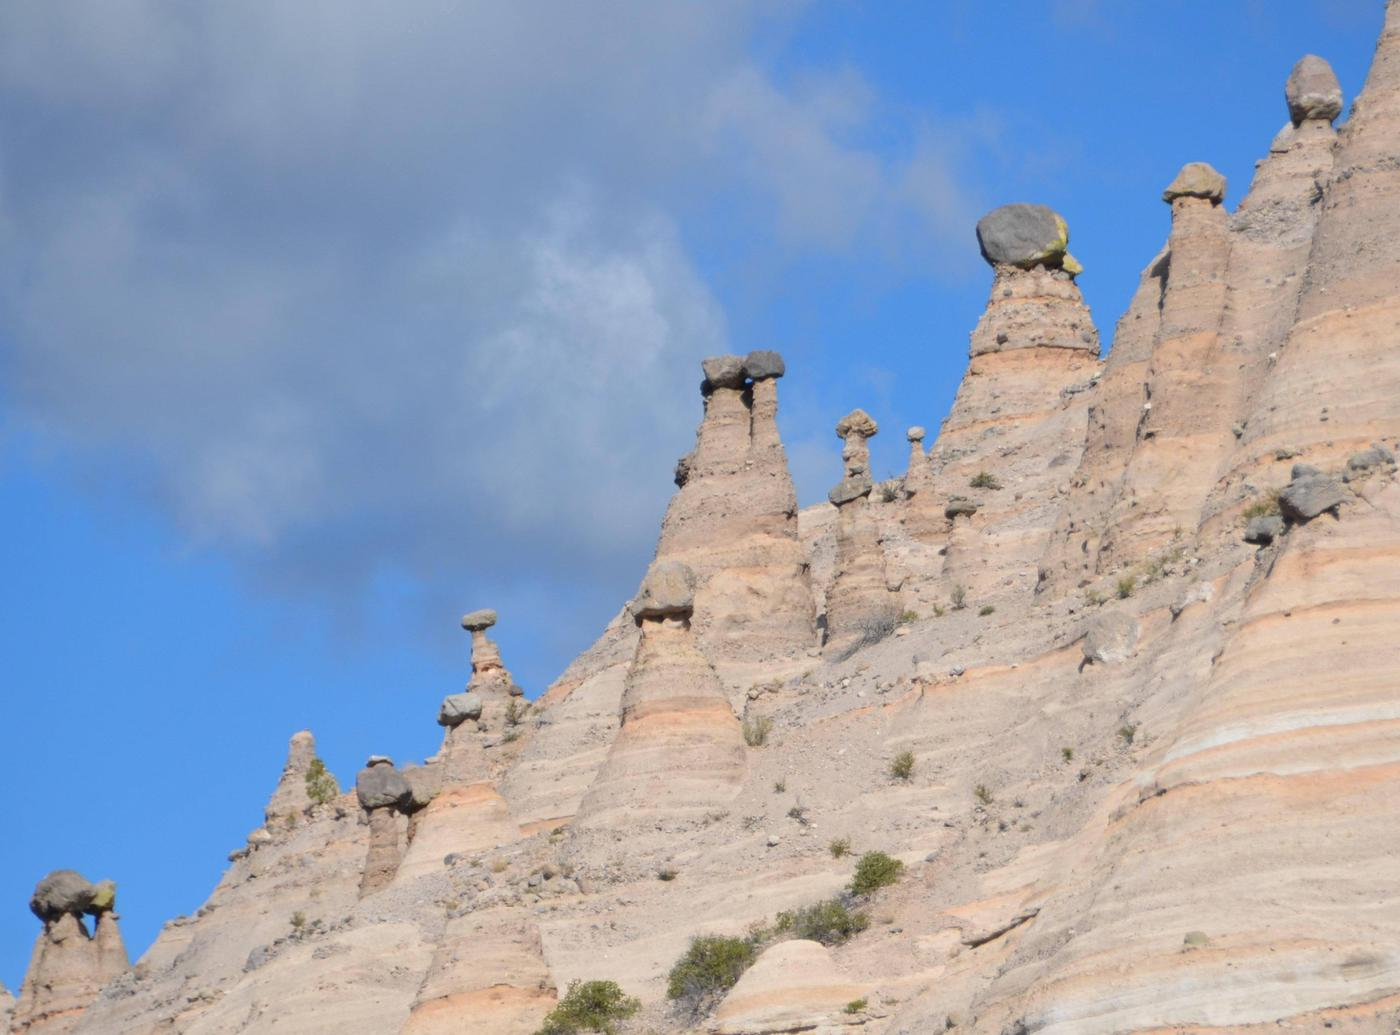 Hoodoos along the horizon